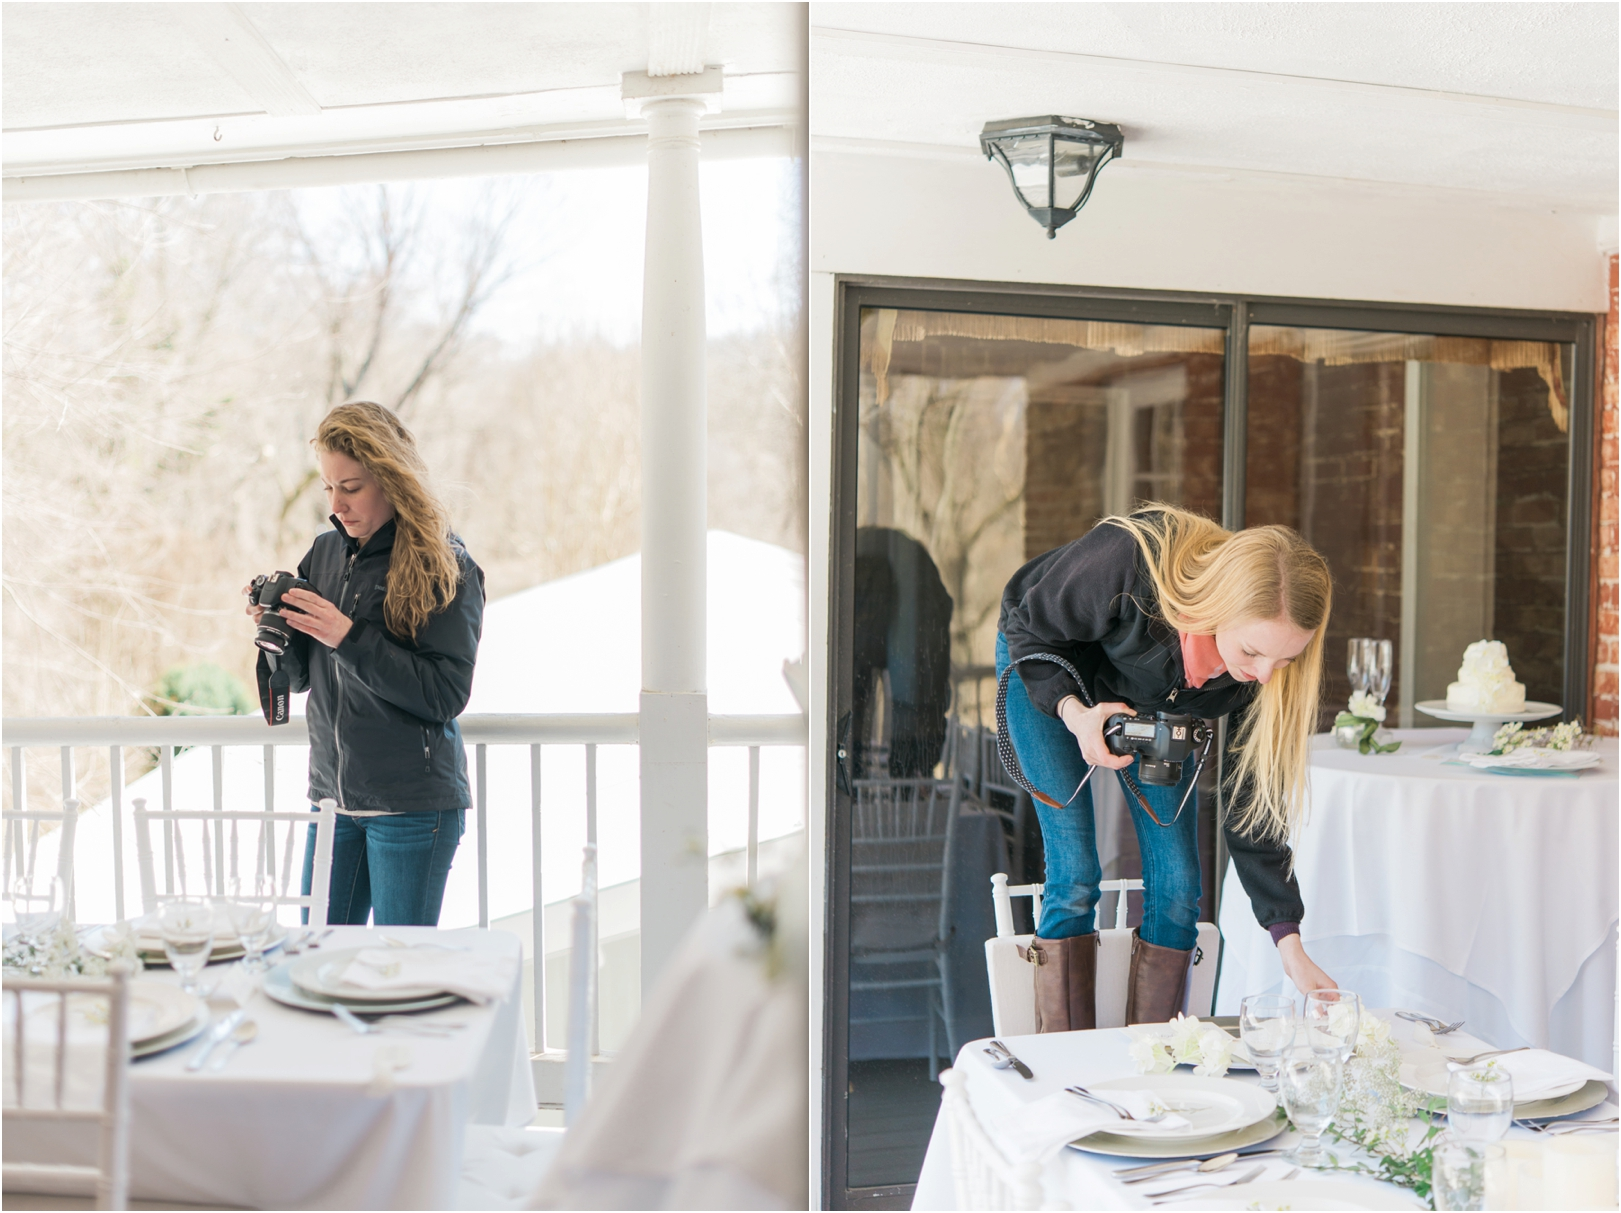 Wedding Photography workshop in Maryland